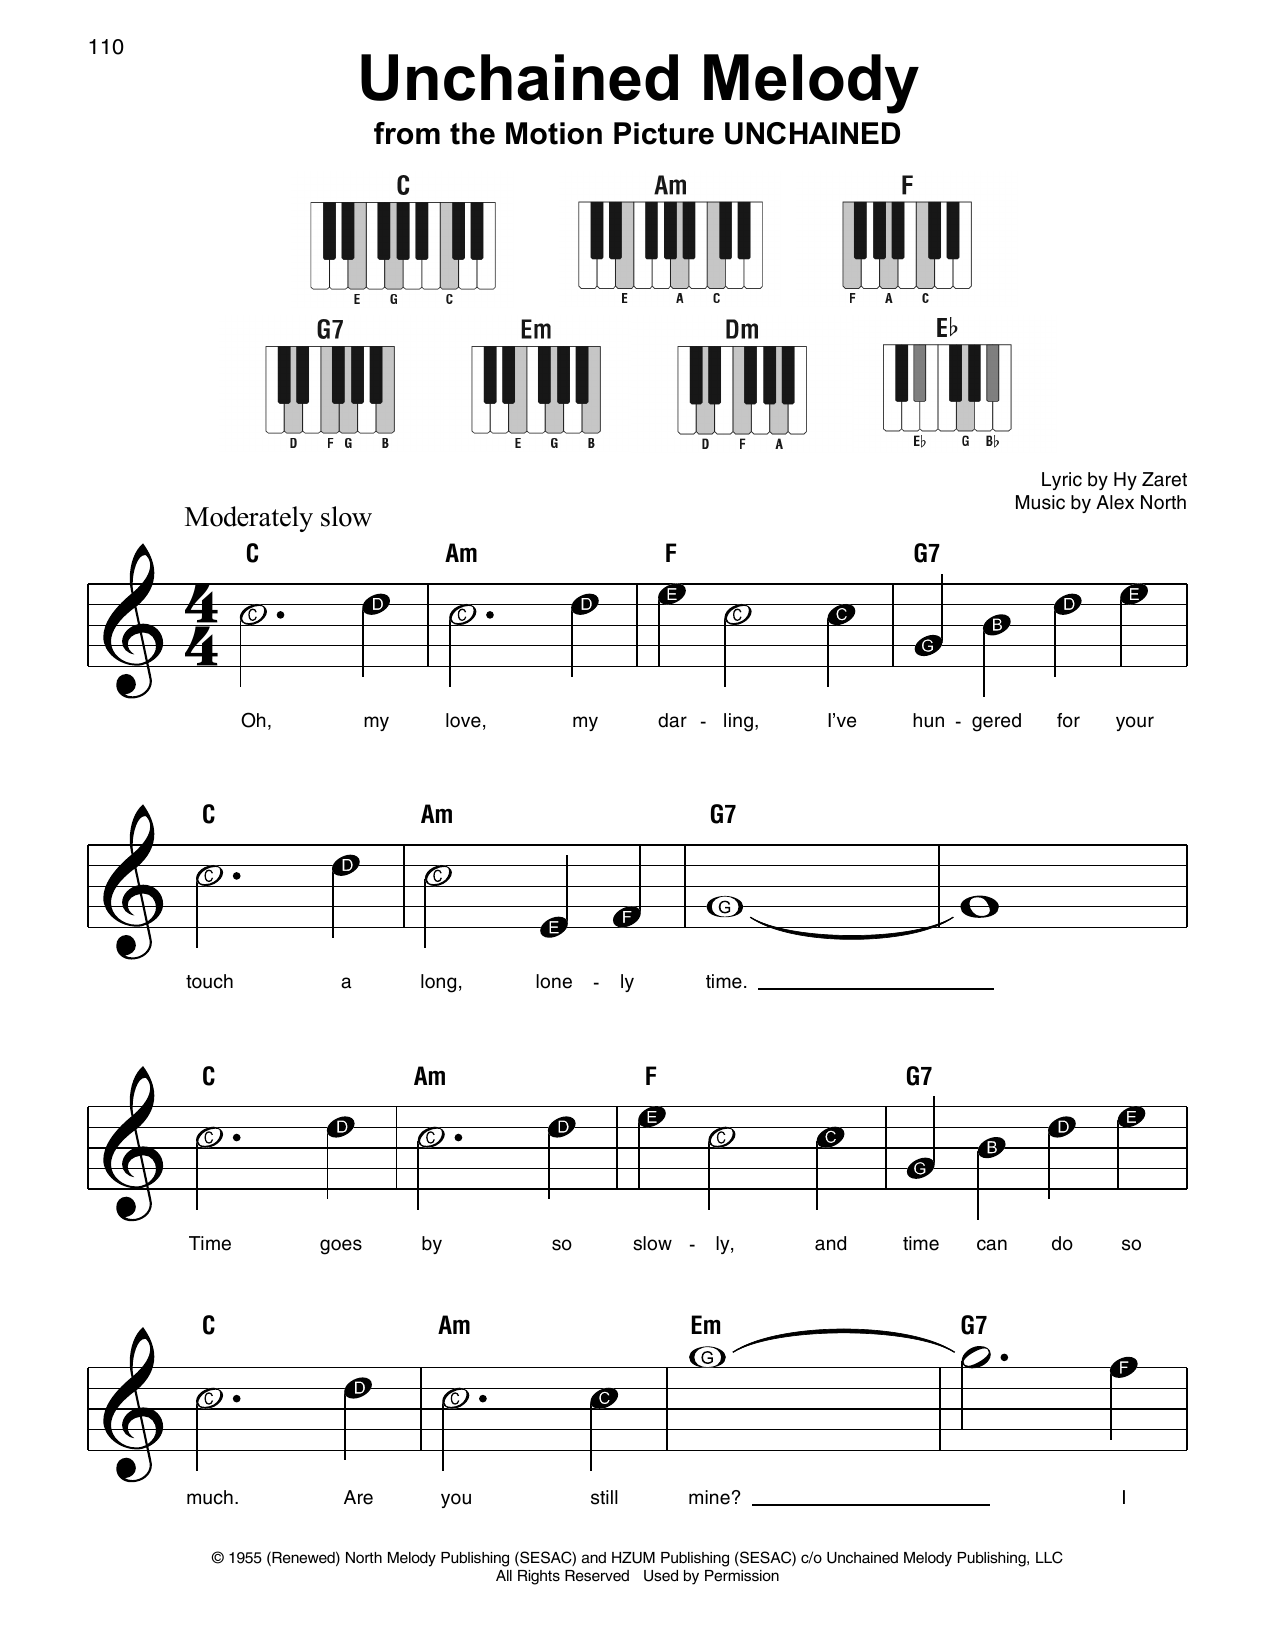 The Righteous Brothers 'Unchained Melody' Sheet Music Notes, Chords |  Download Printable Super Easy Piano - SKU: 197266